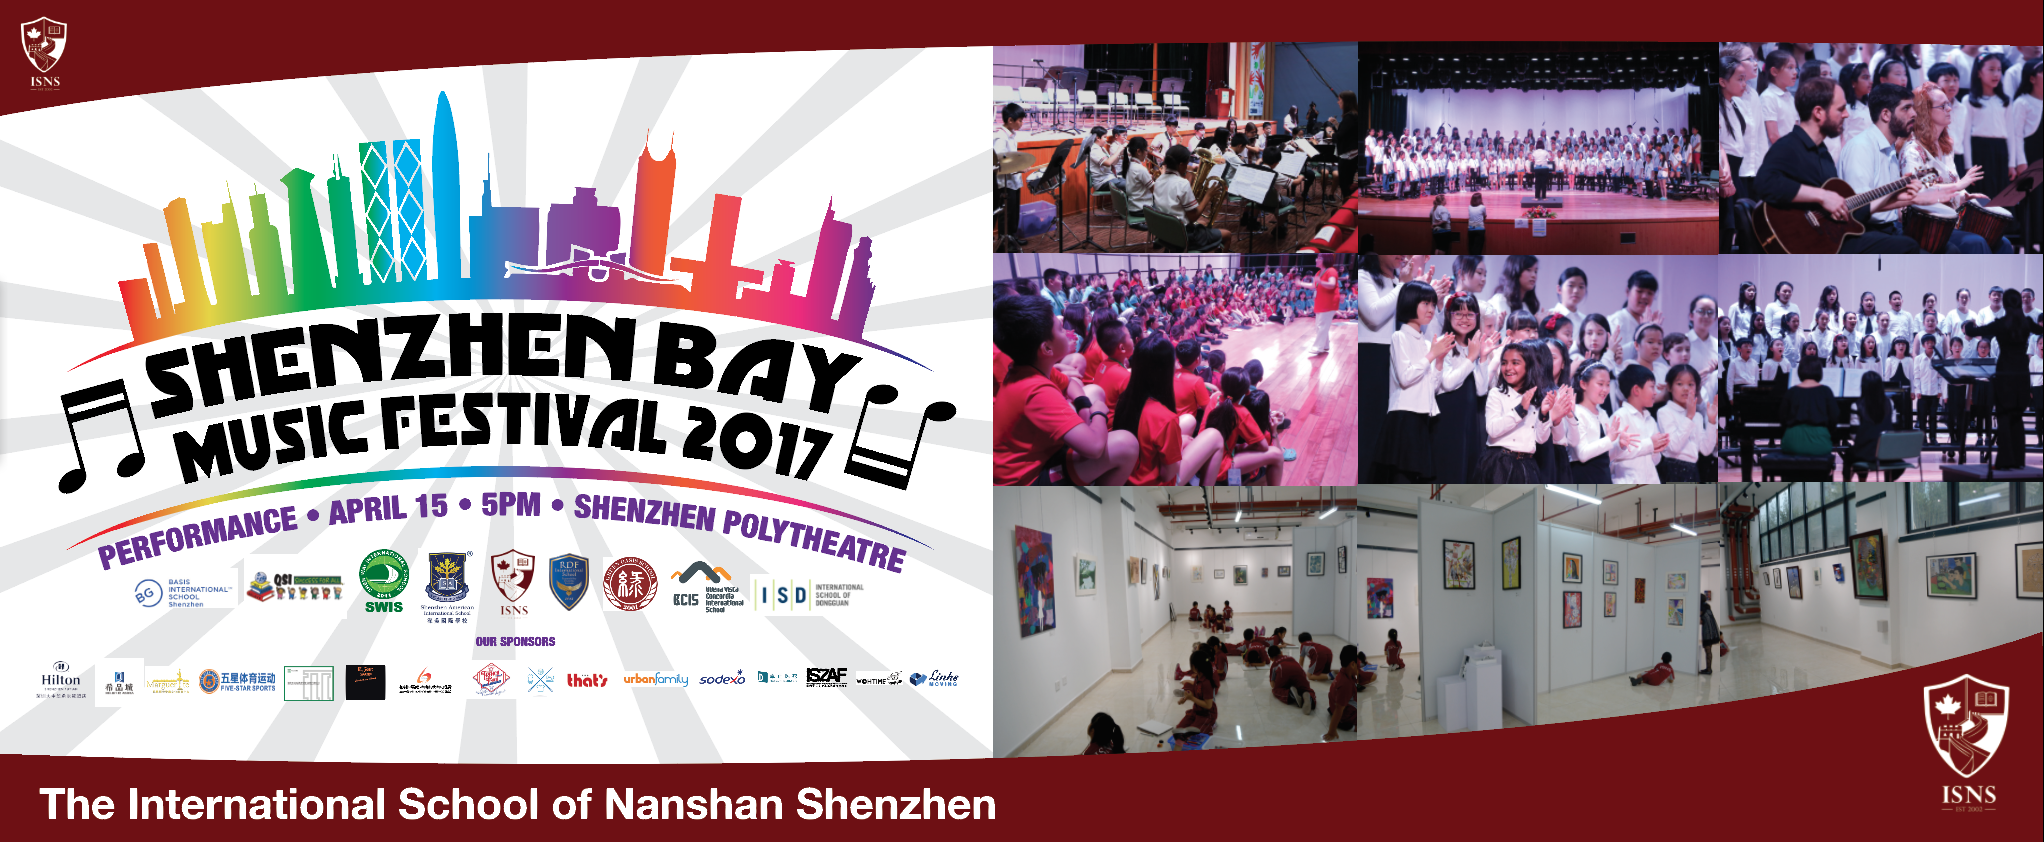 Shenzhen Bay International Schools Music Festival Banner. 2mx6m. 2017.